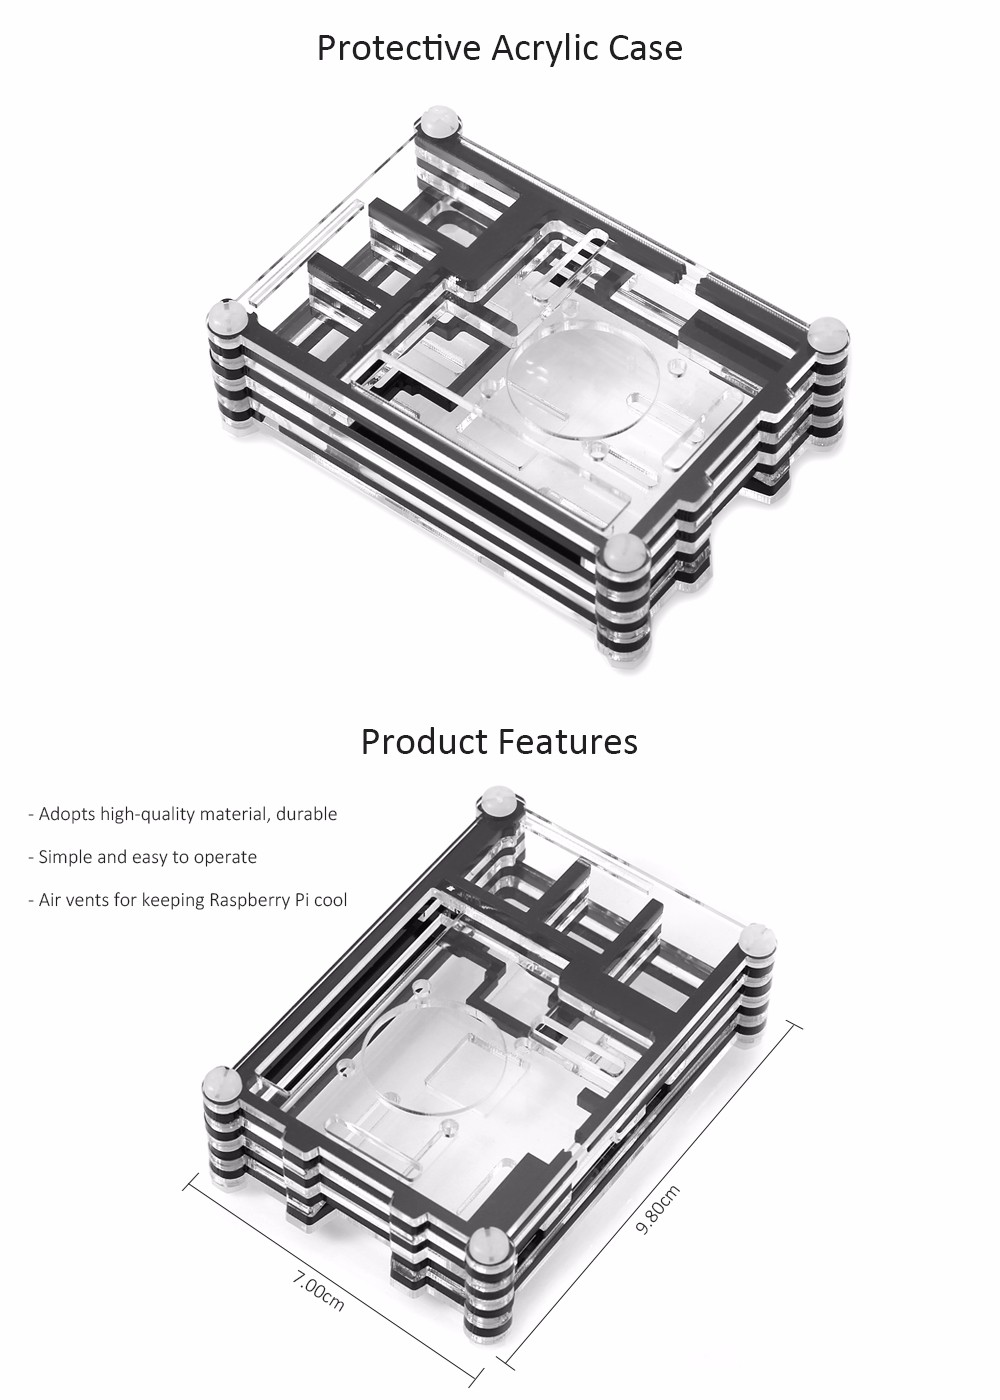 Protective Acrylic Case Protective Enclosure for Raspberry Pi 2B / B +